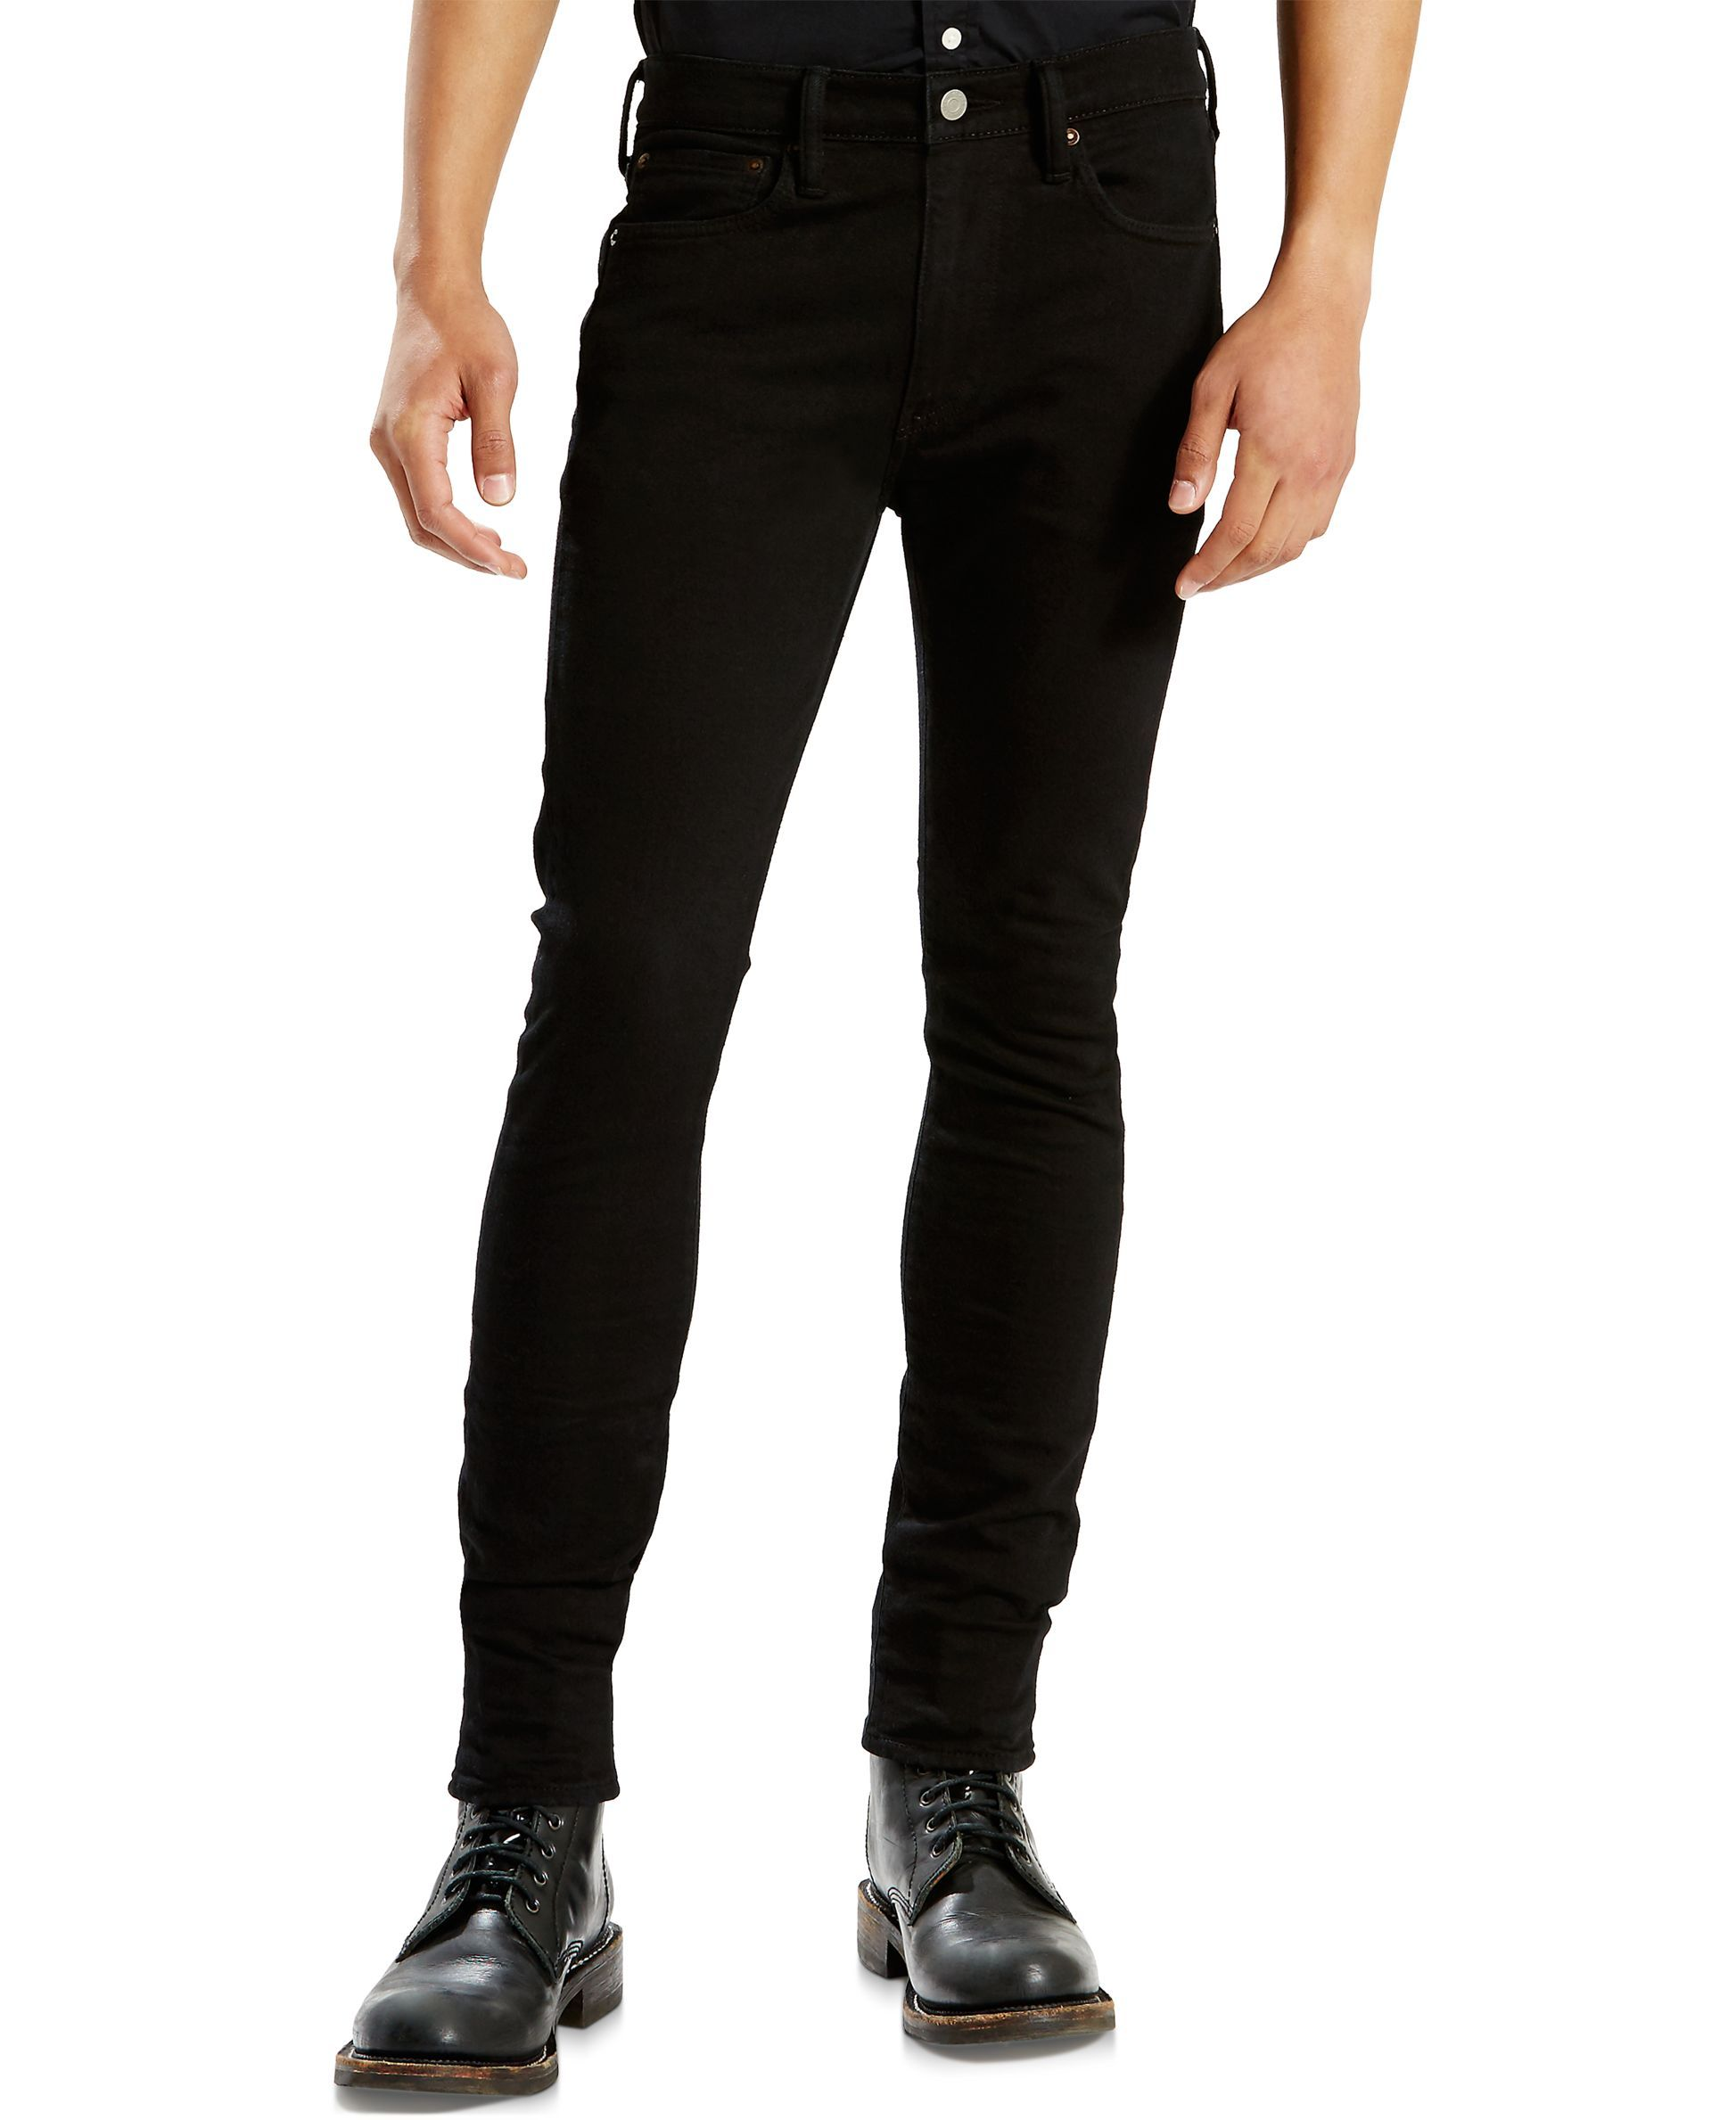 724e320bf5d Levi's Men's 519 Extreme Skinny-Fit Darkness Jeans | Men's Fashion ...